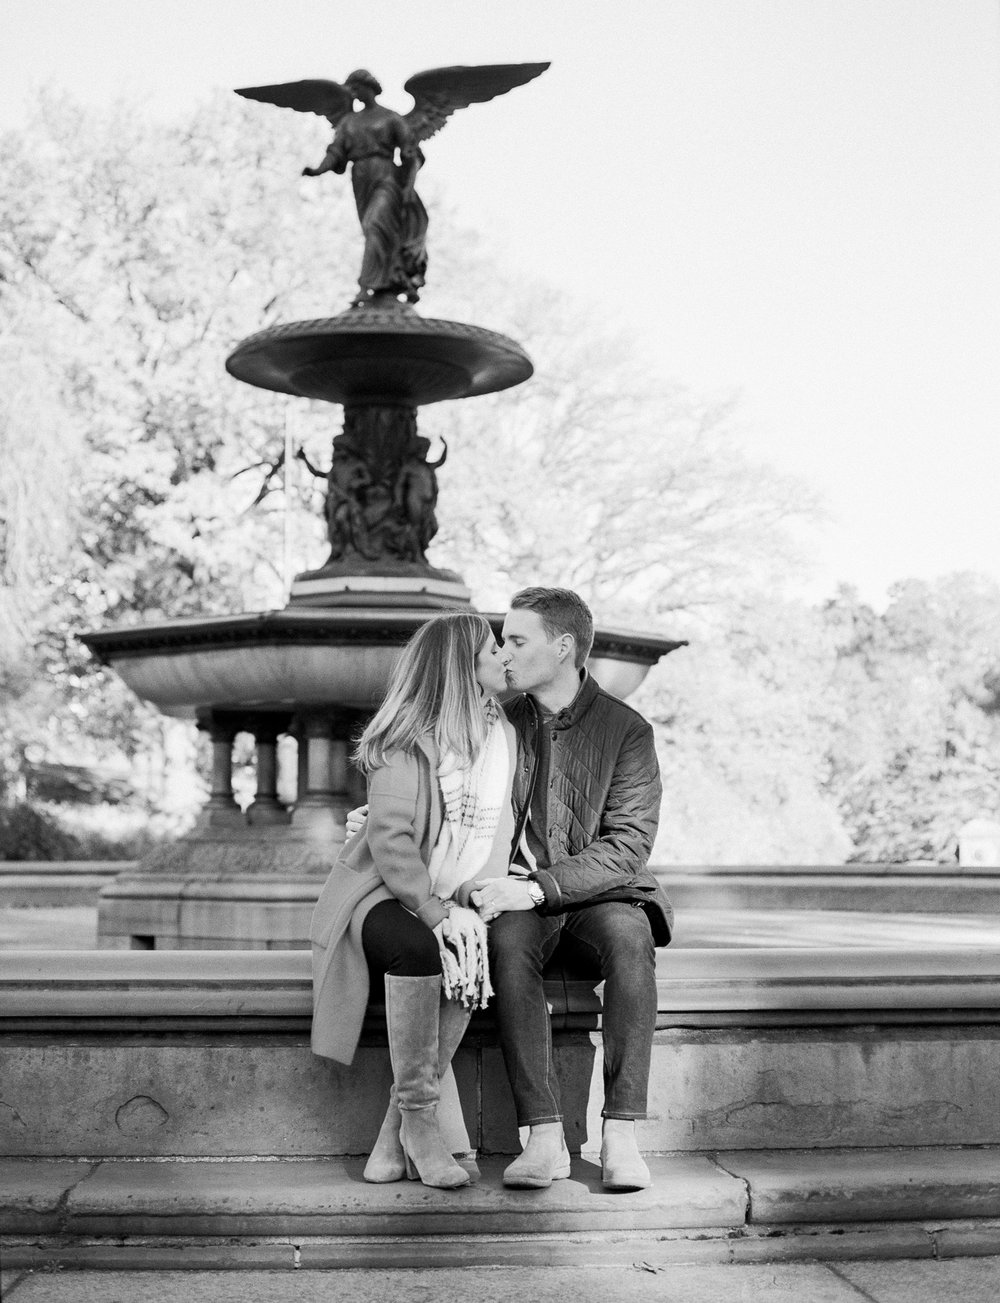 Central-park-fall-engagement-session-by Tanya Isaeva-8.jpg